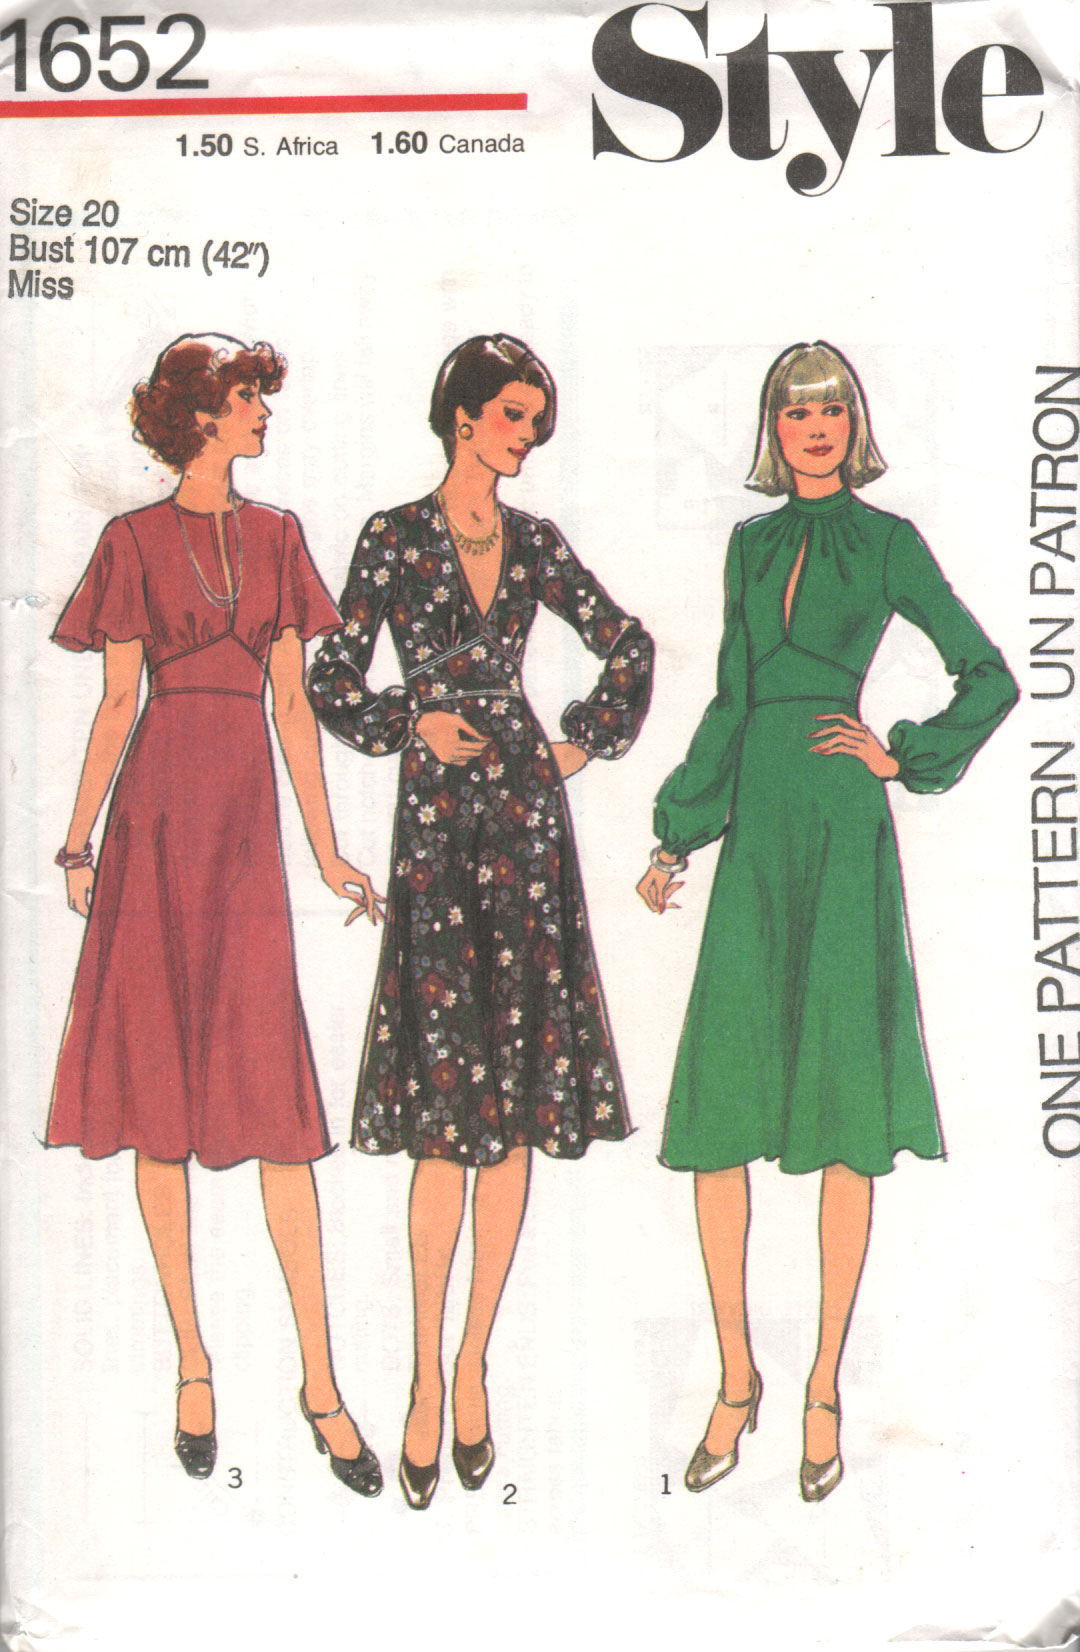 Style 1652 | Vintage Sewing Patterns | FANDOM powered by Wikia